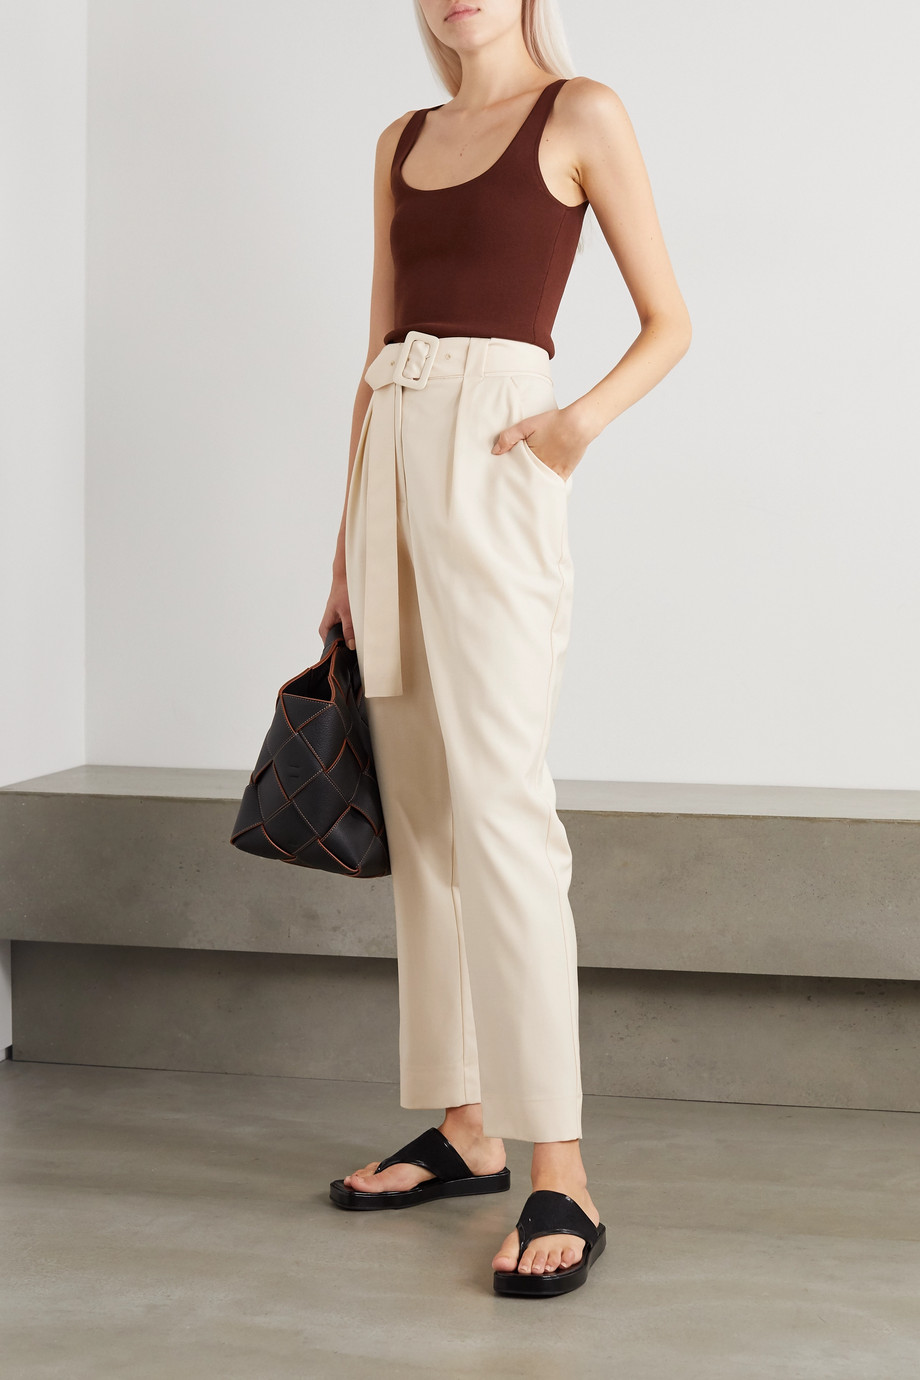 Envelope1976 + NET SUSTAIN Pfeiffer belted pleated wool pants